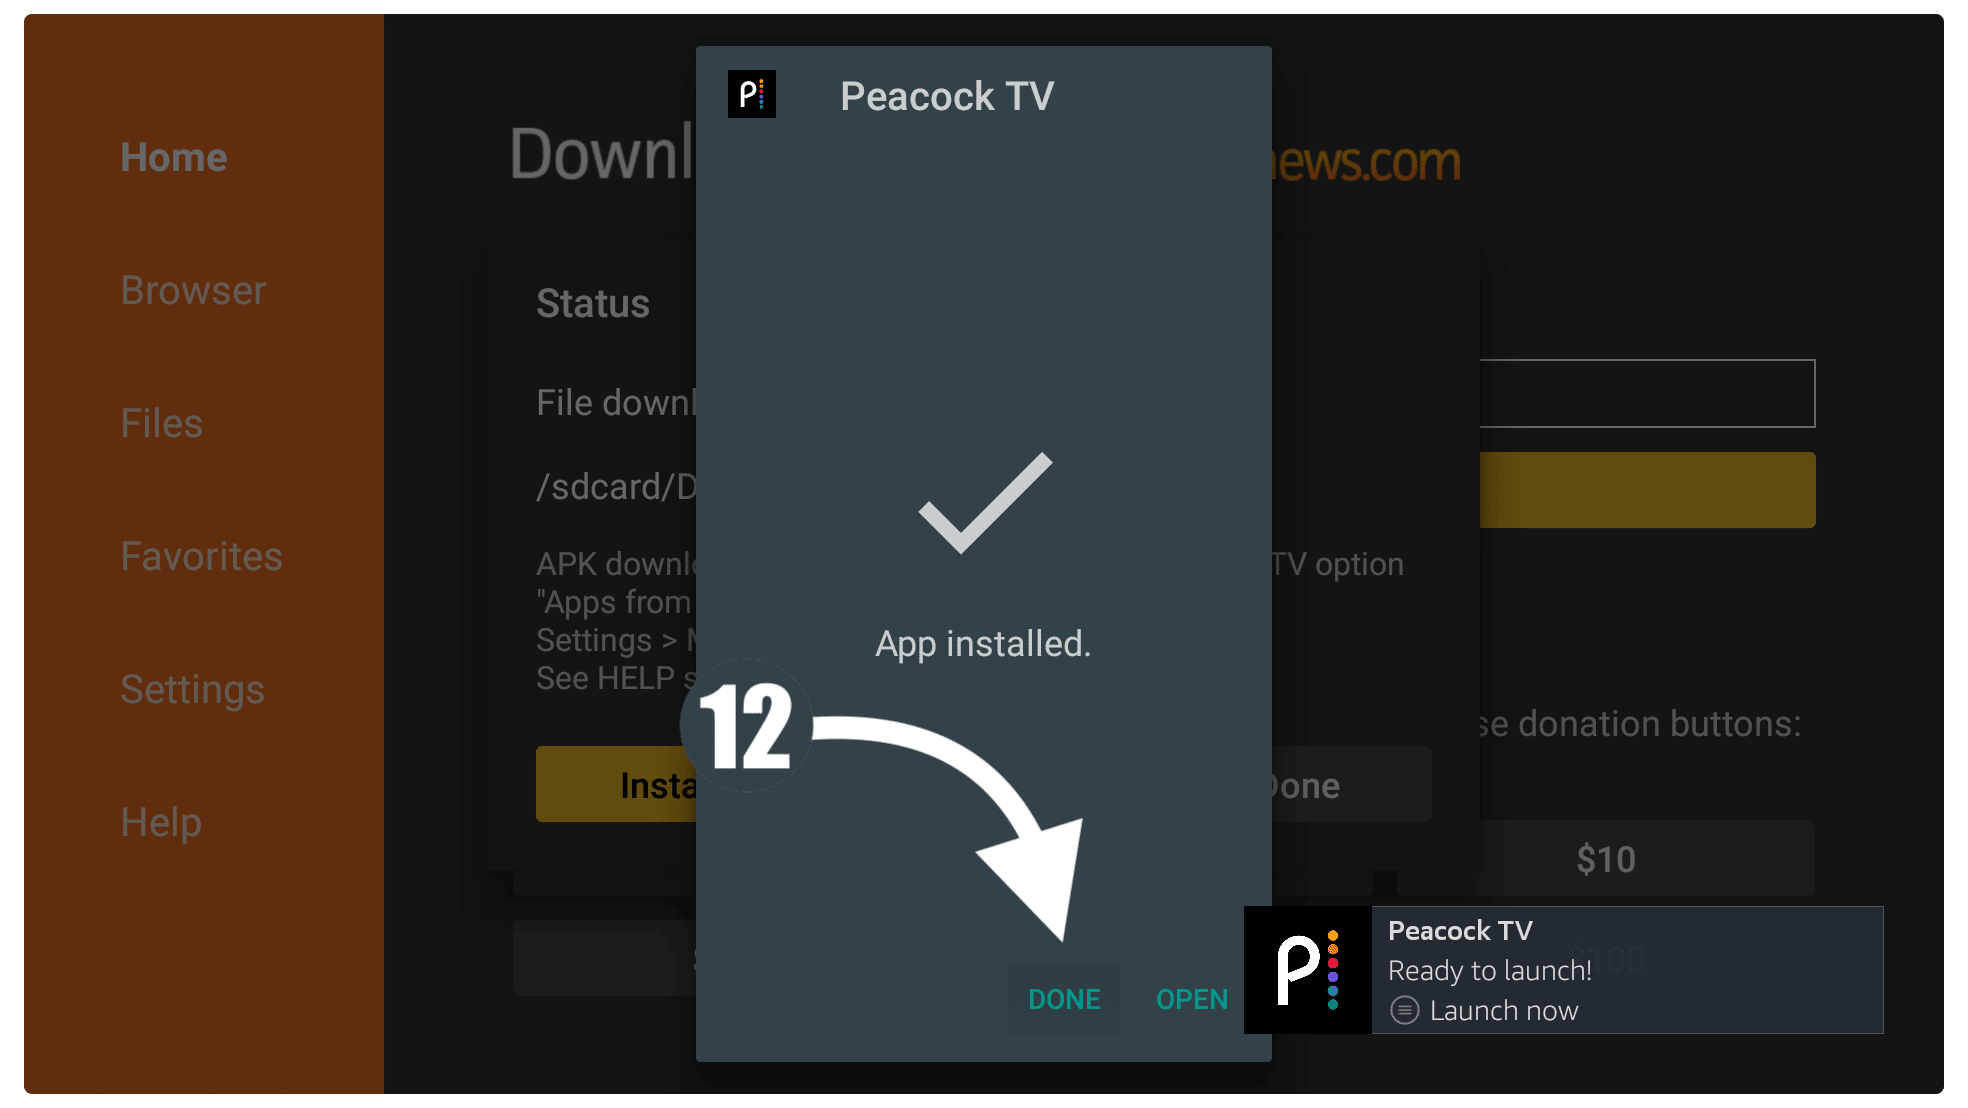 Put-Peacock-TV-App-on-Firestick